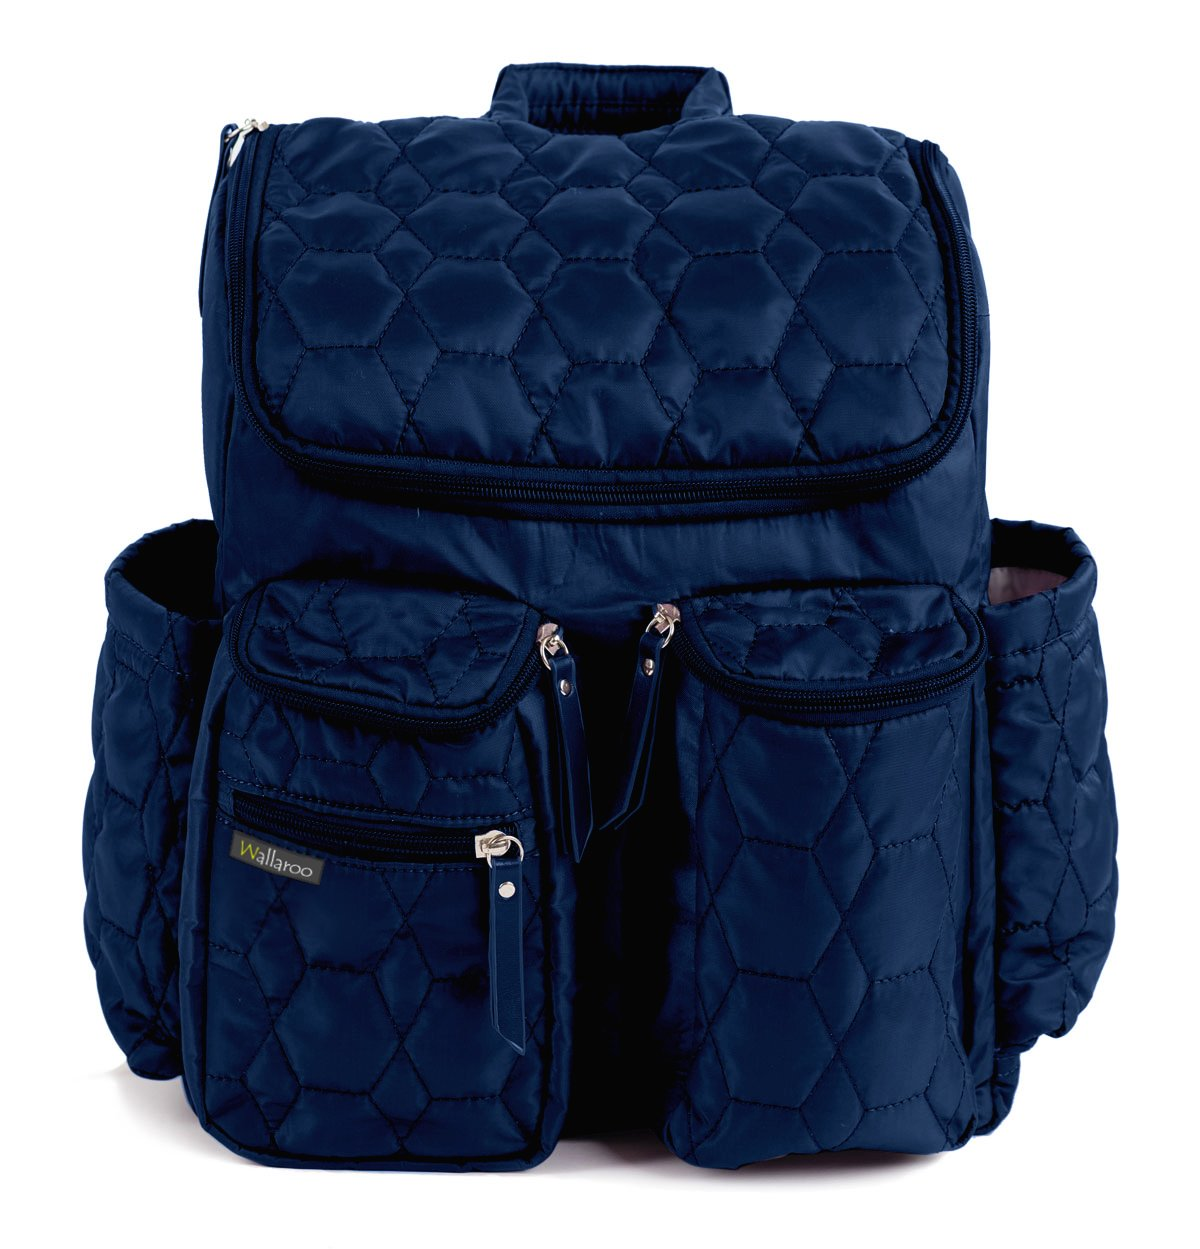 Wallaroo Diaper Bag Backpack with Stroller Straps, Wet Bag and Diaper Changing Pad